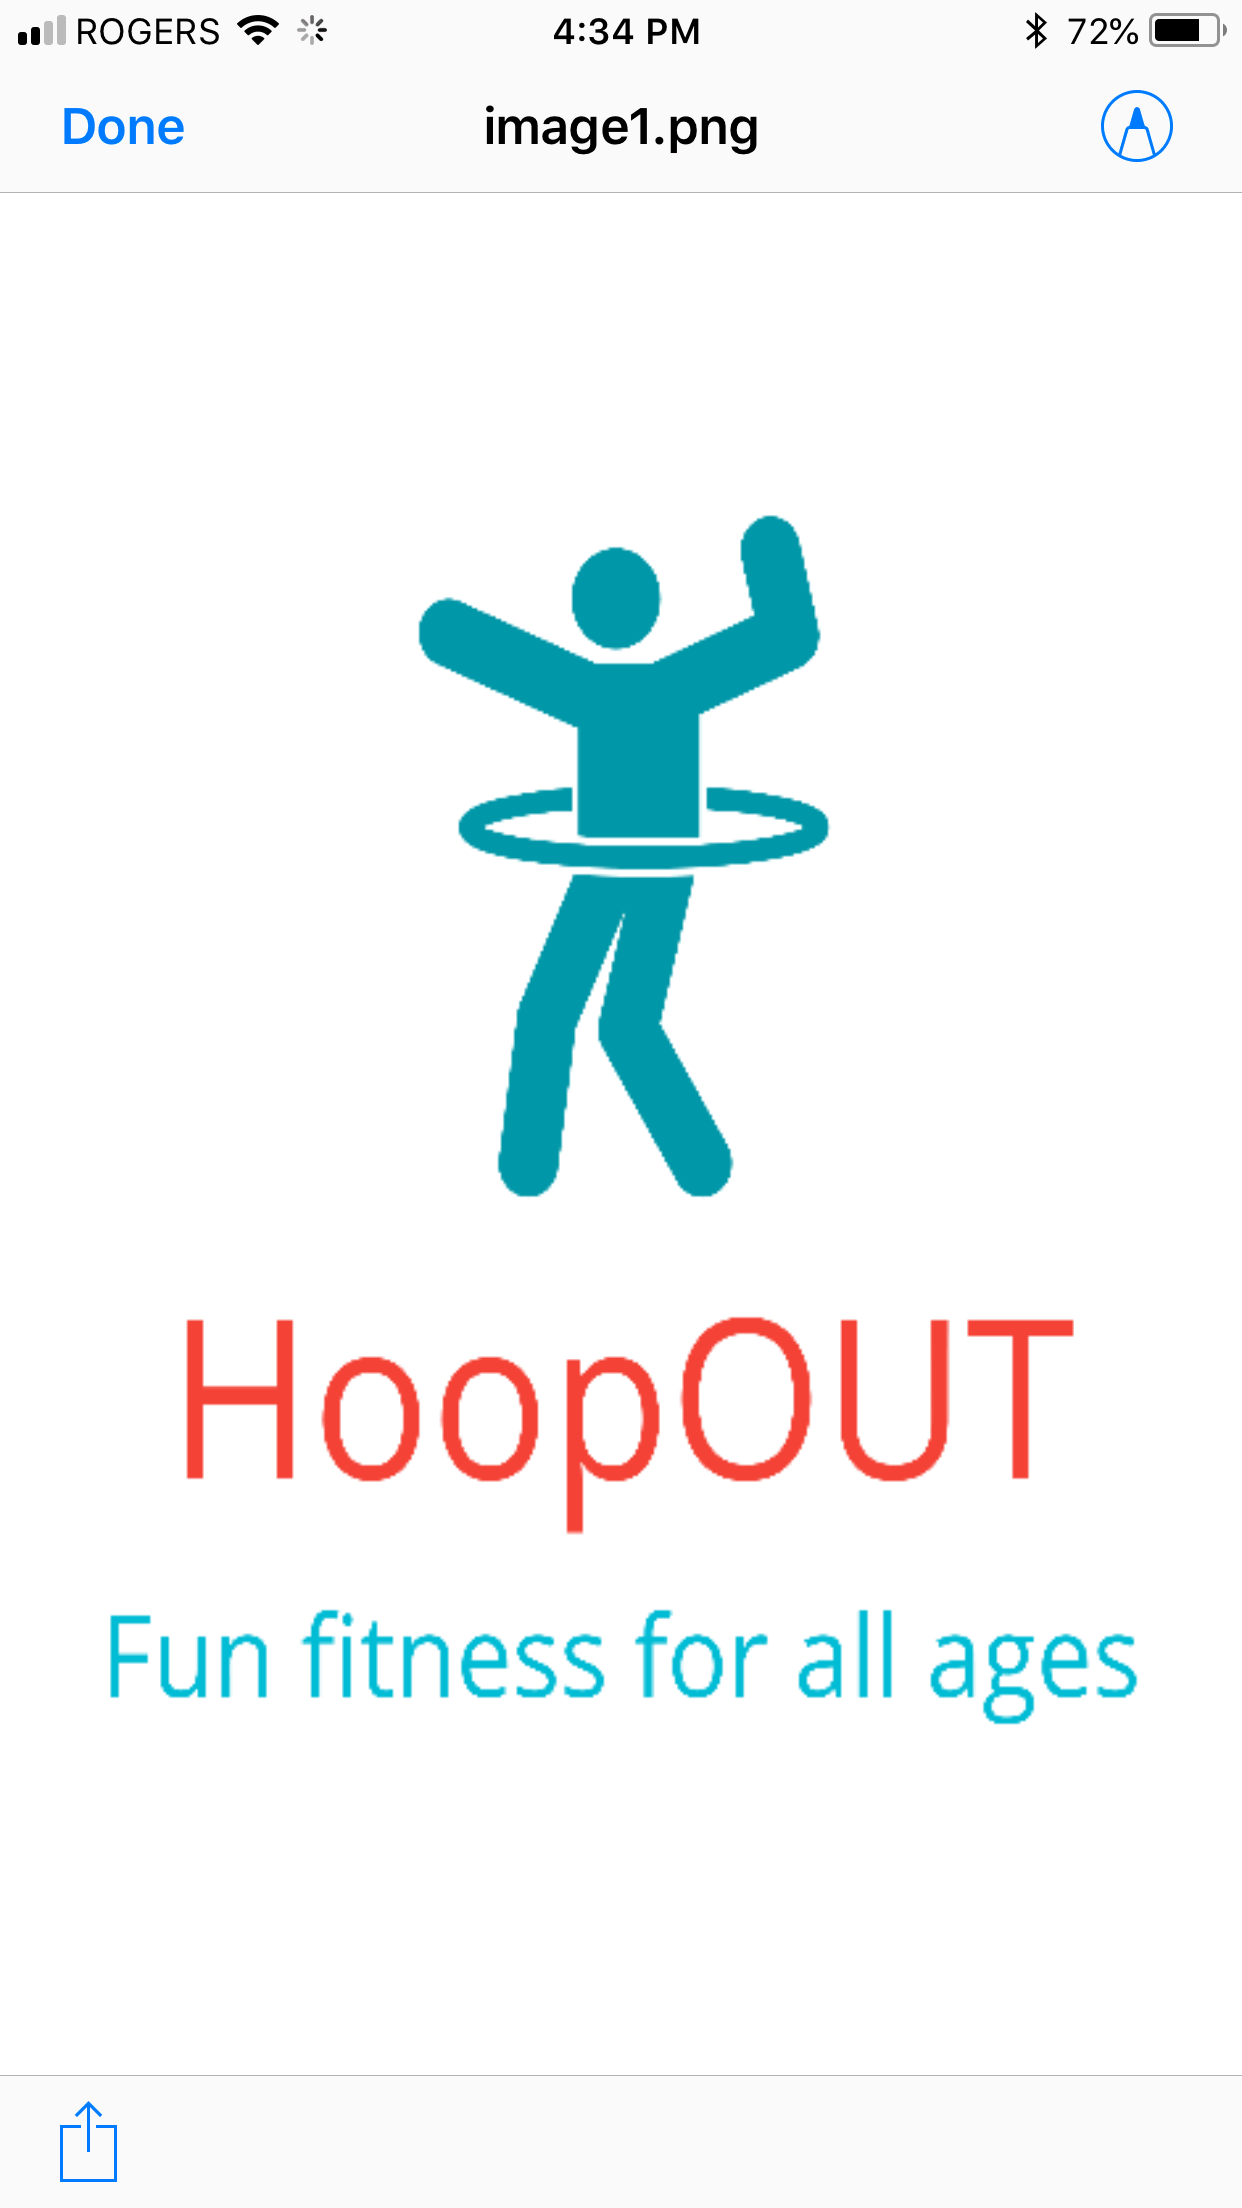 HoopOUT